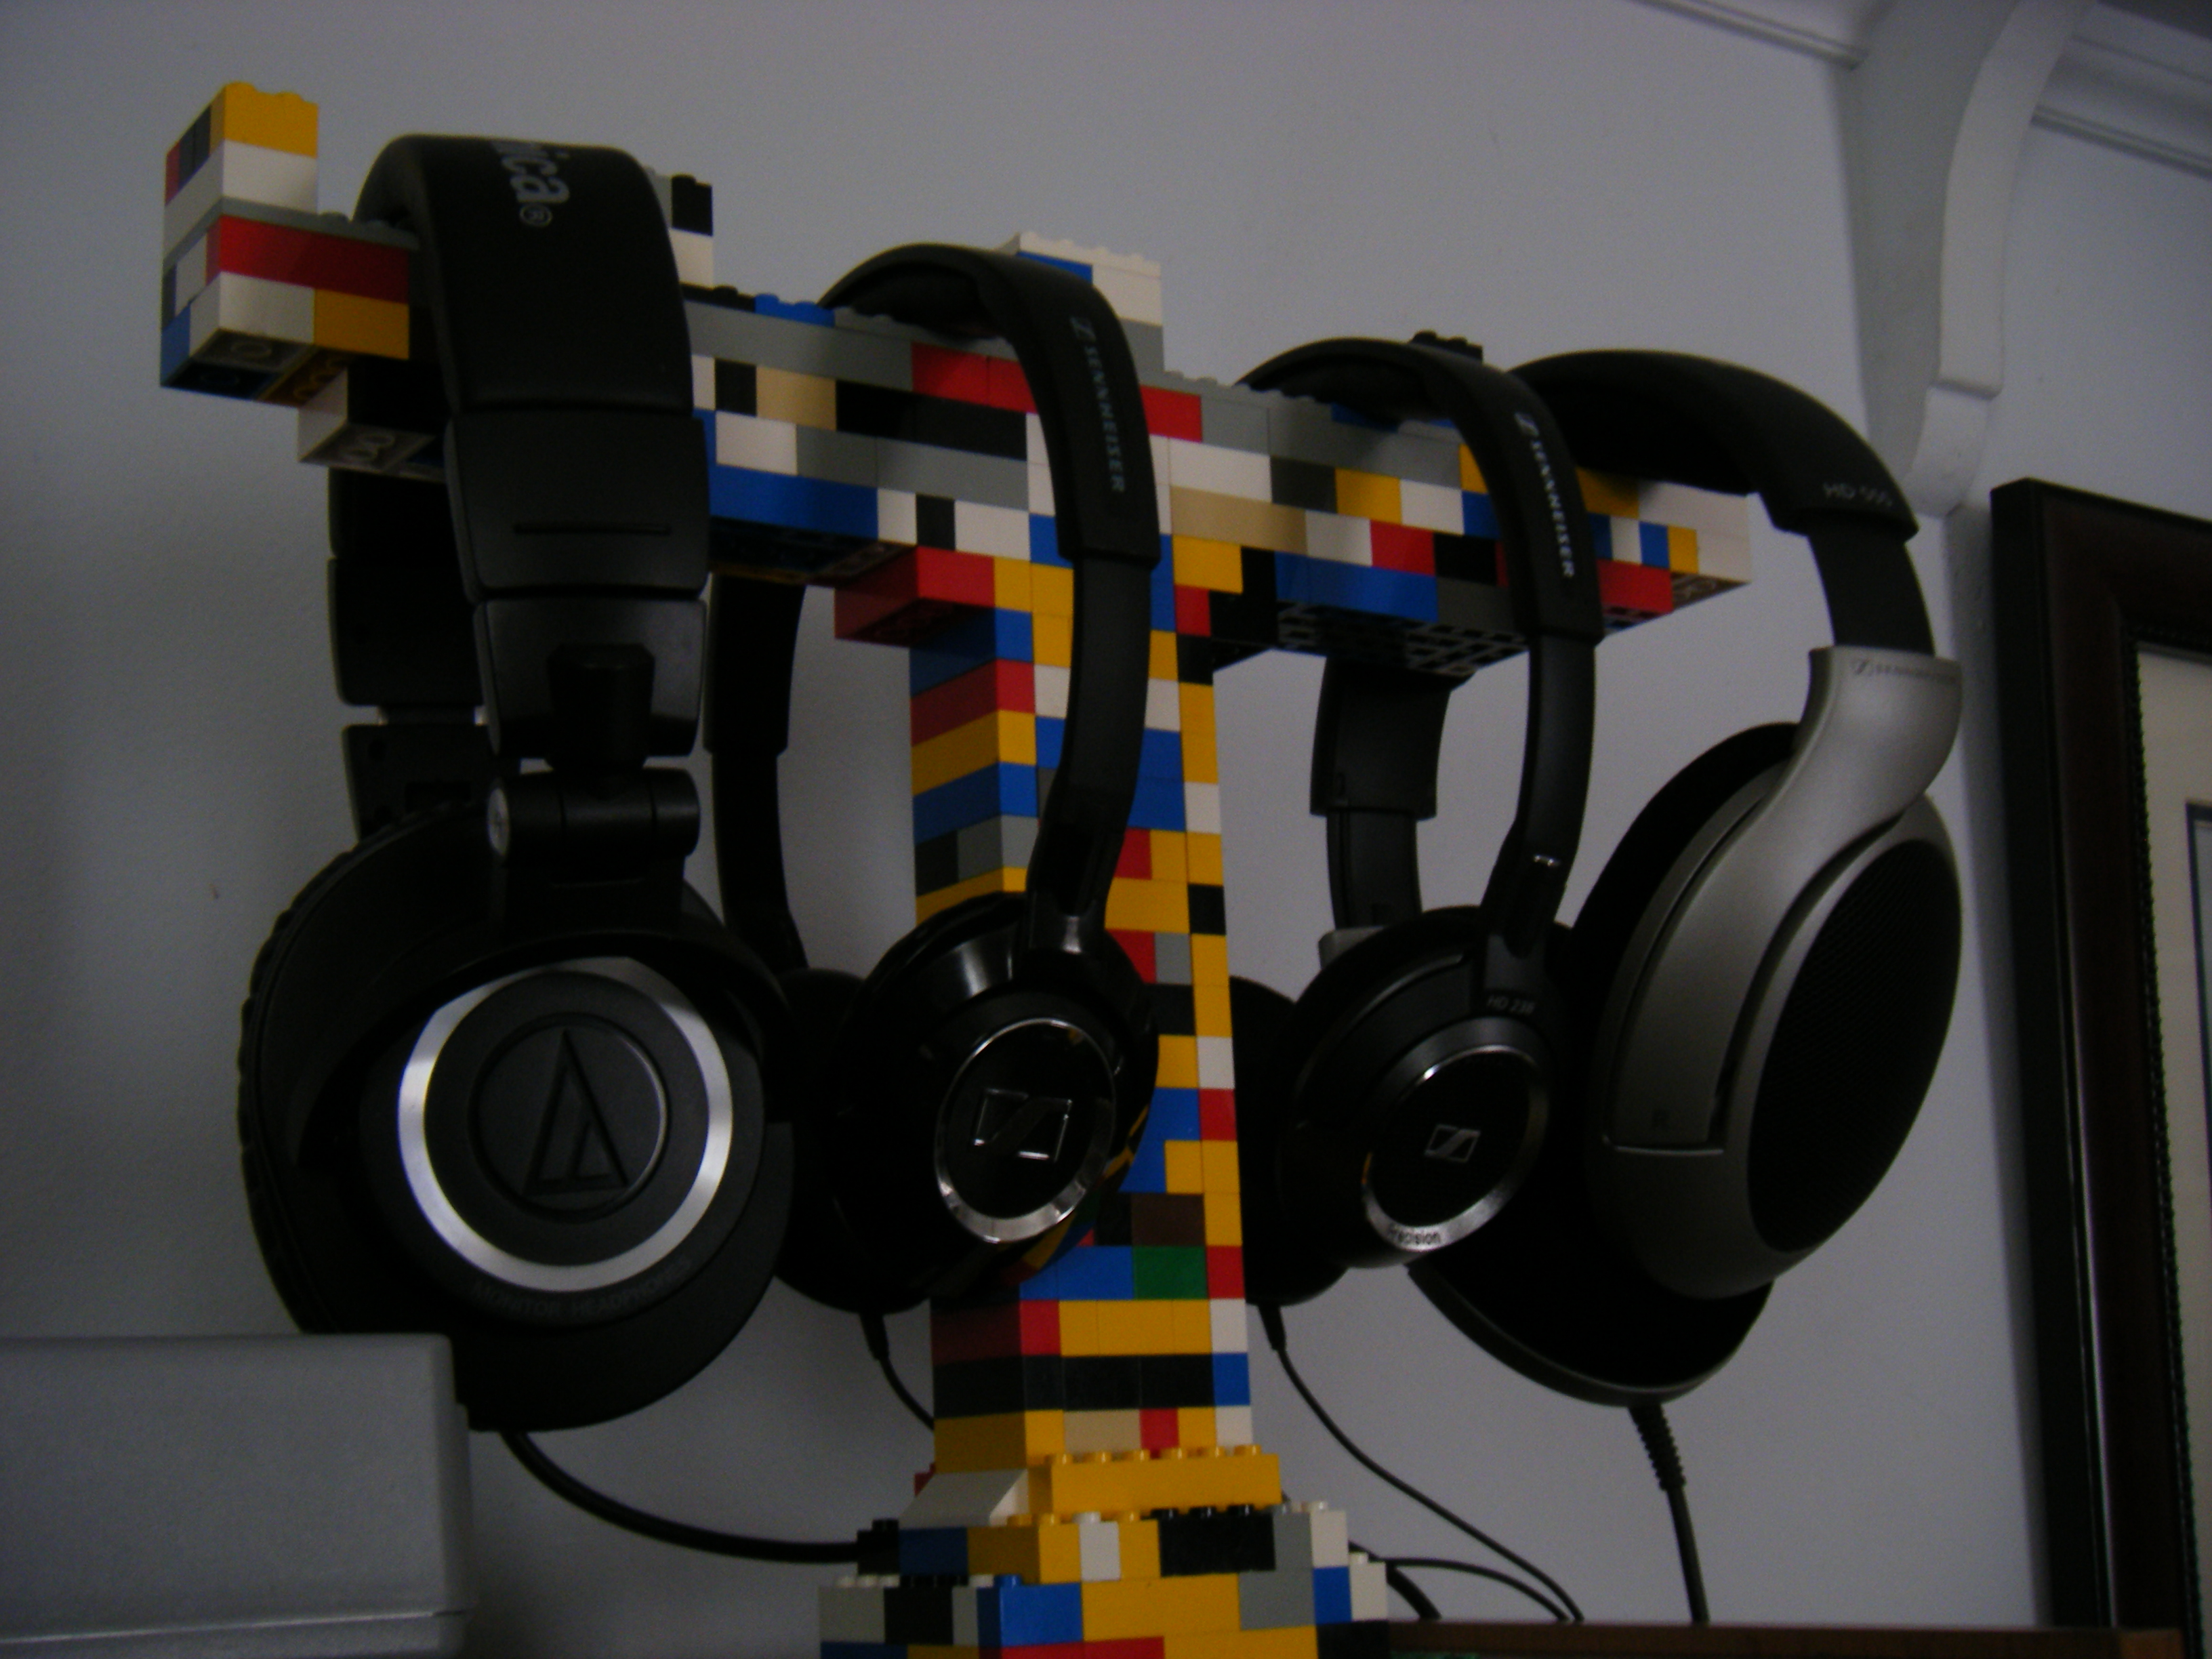 The most elegant of diy headphone stands or even the most elegant lego